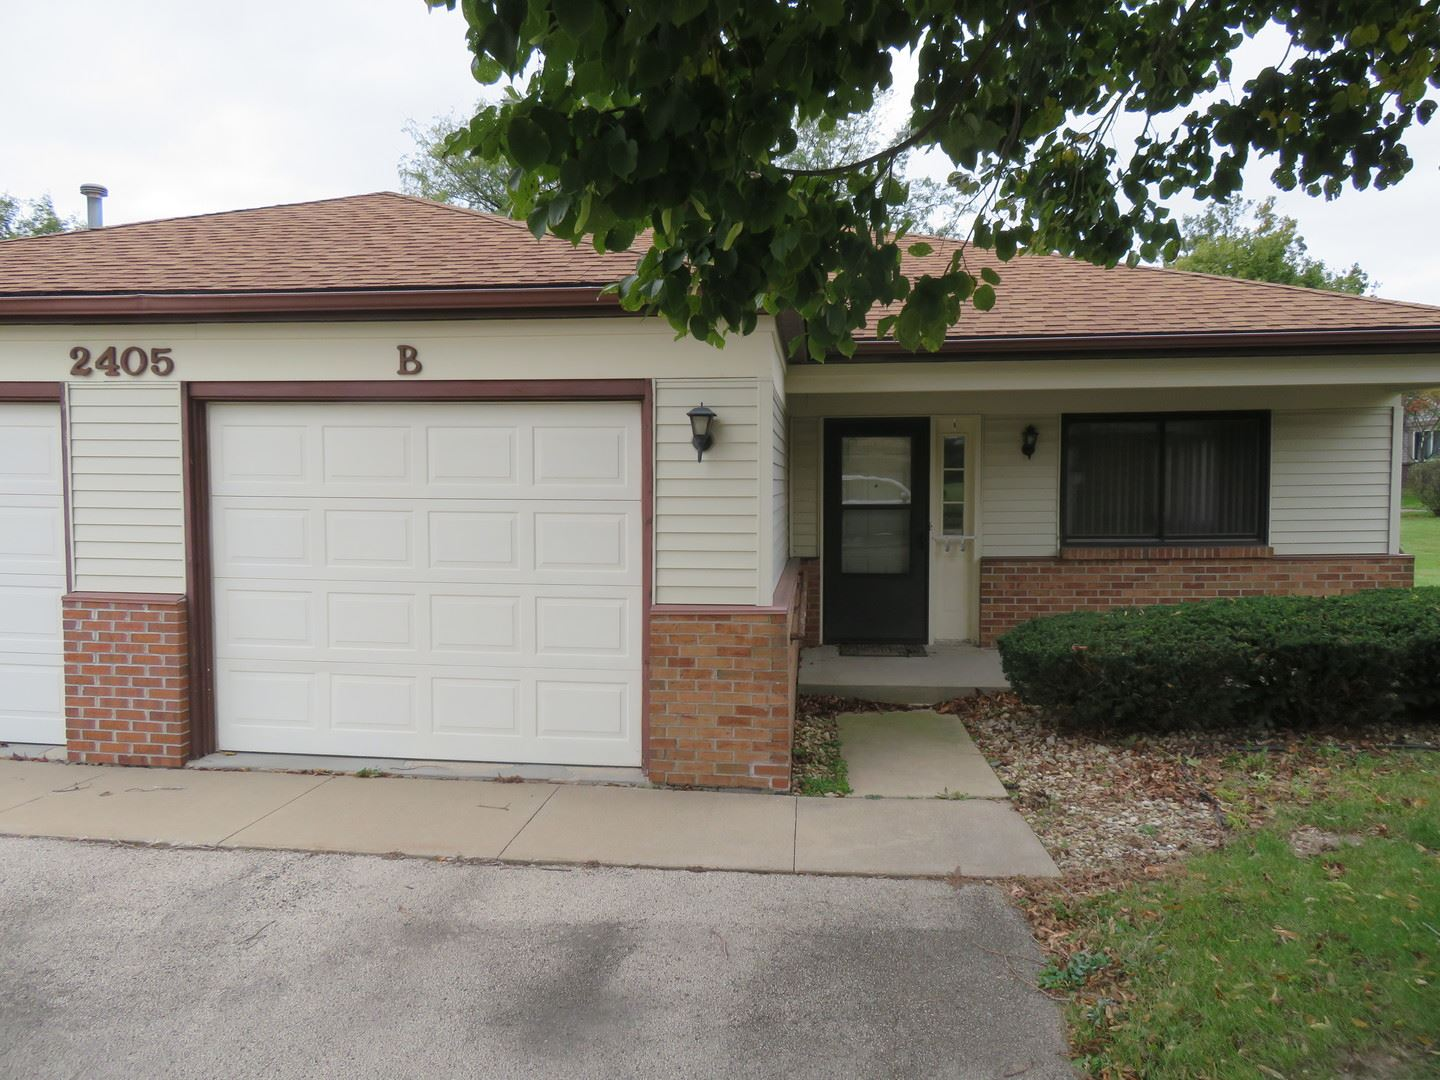 2405 Coventry Court #B, Sterling, IL 61081 - #: 10551120